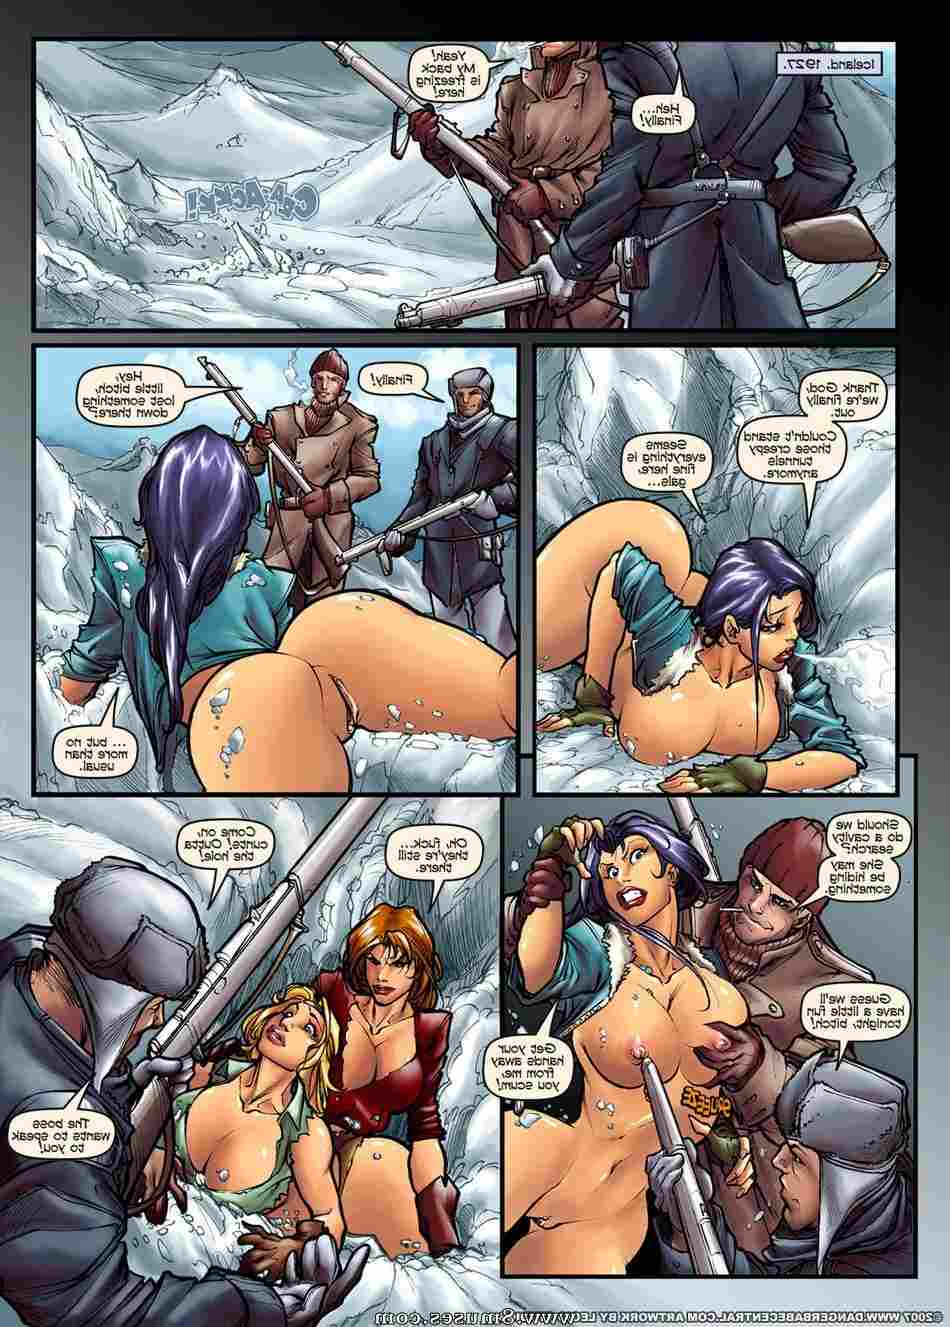 Legio-Studio-Comics/Sexy-Seekers Sexy_Seekers__8muses_-_Sex_and_Porn_Comics_17.jpg